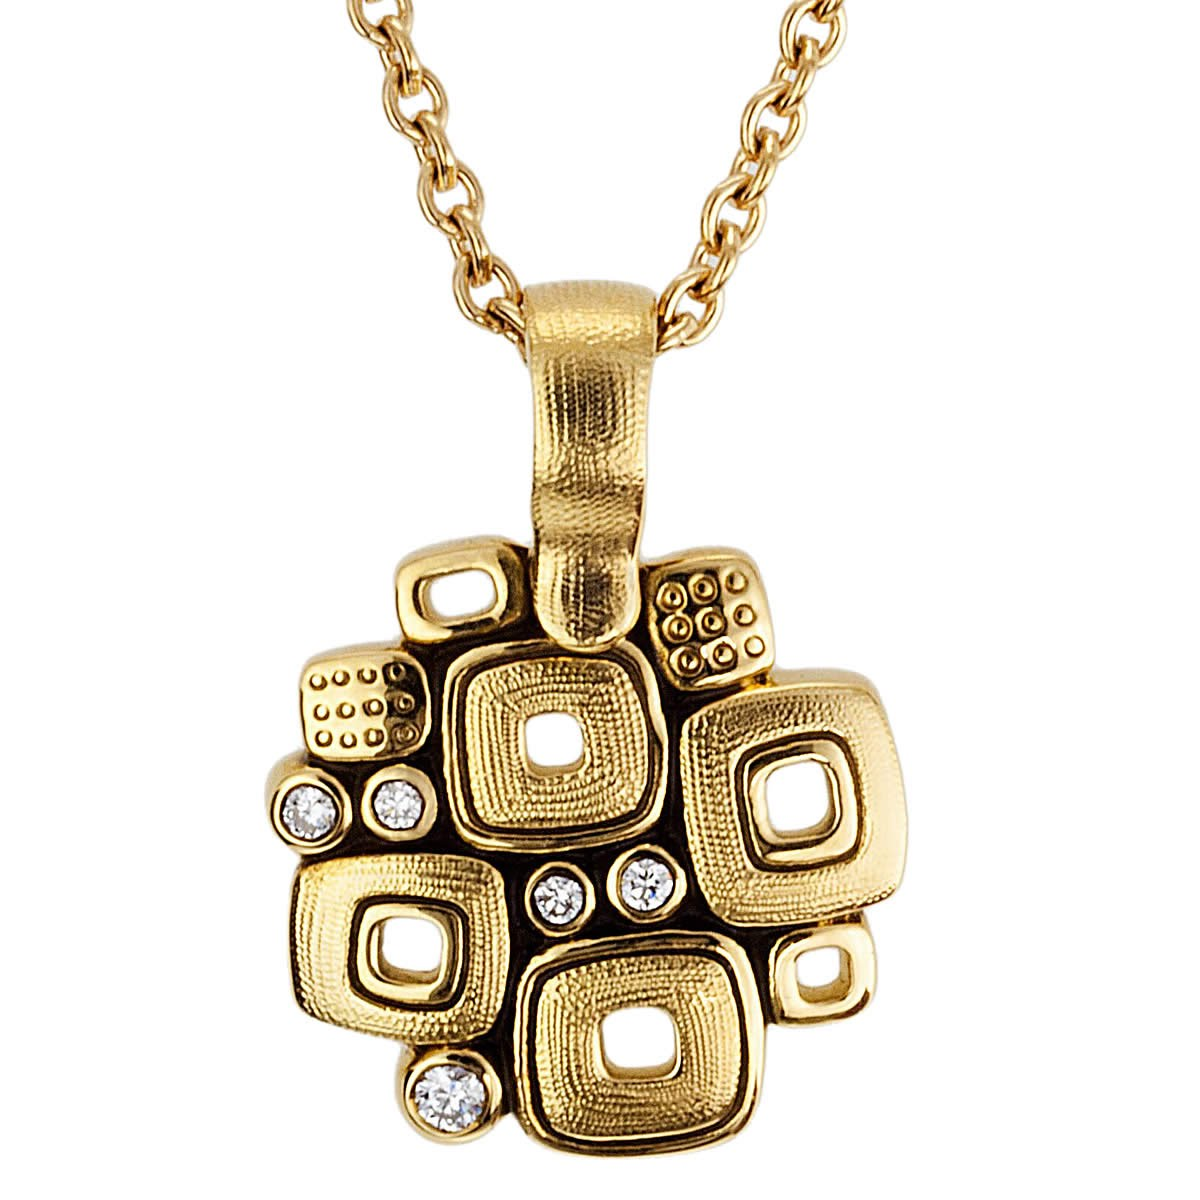 M-59 Alex Sepkus Little Windows pendant necklace 18k yellow gold diamonds